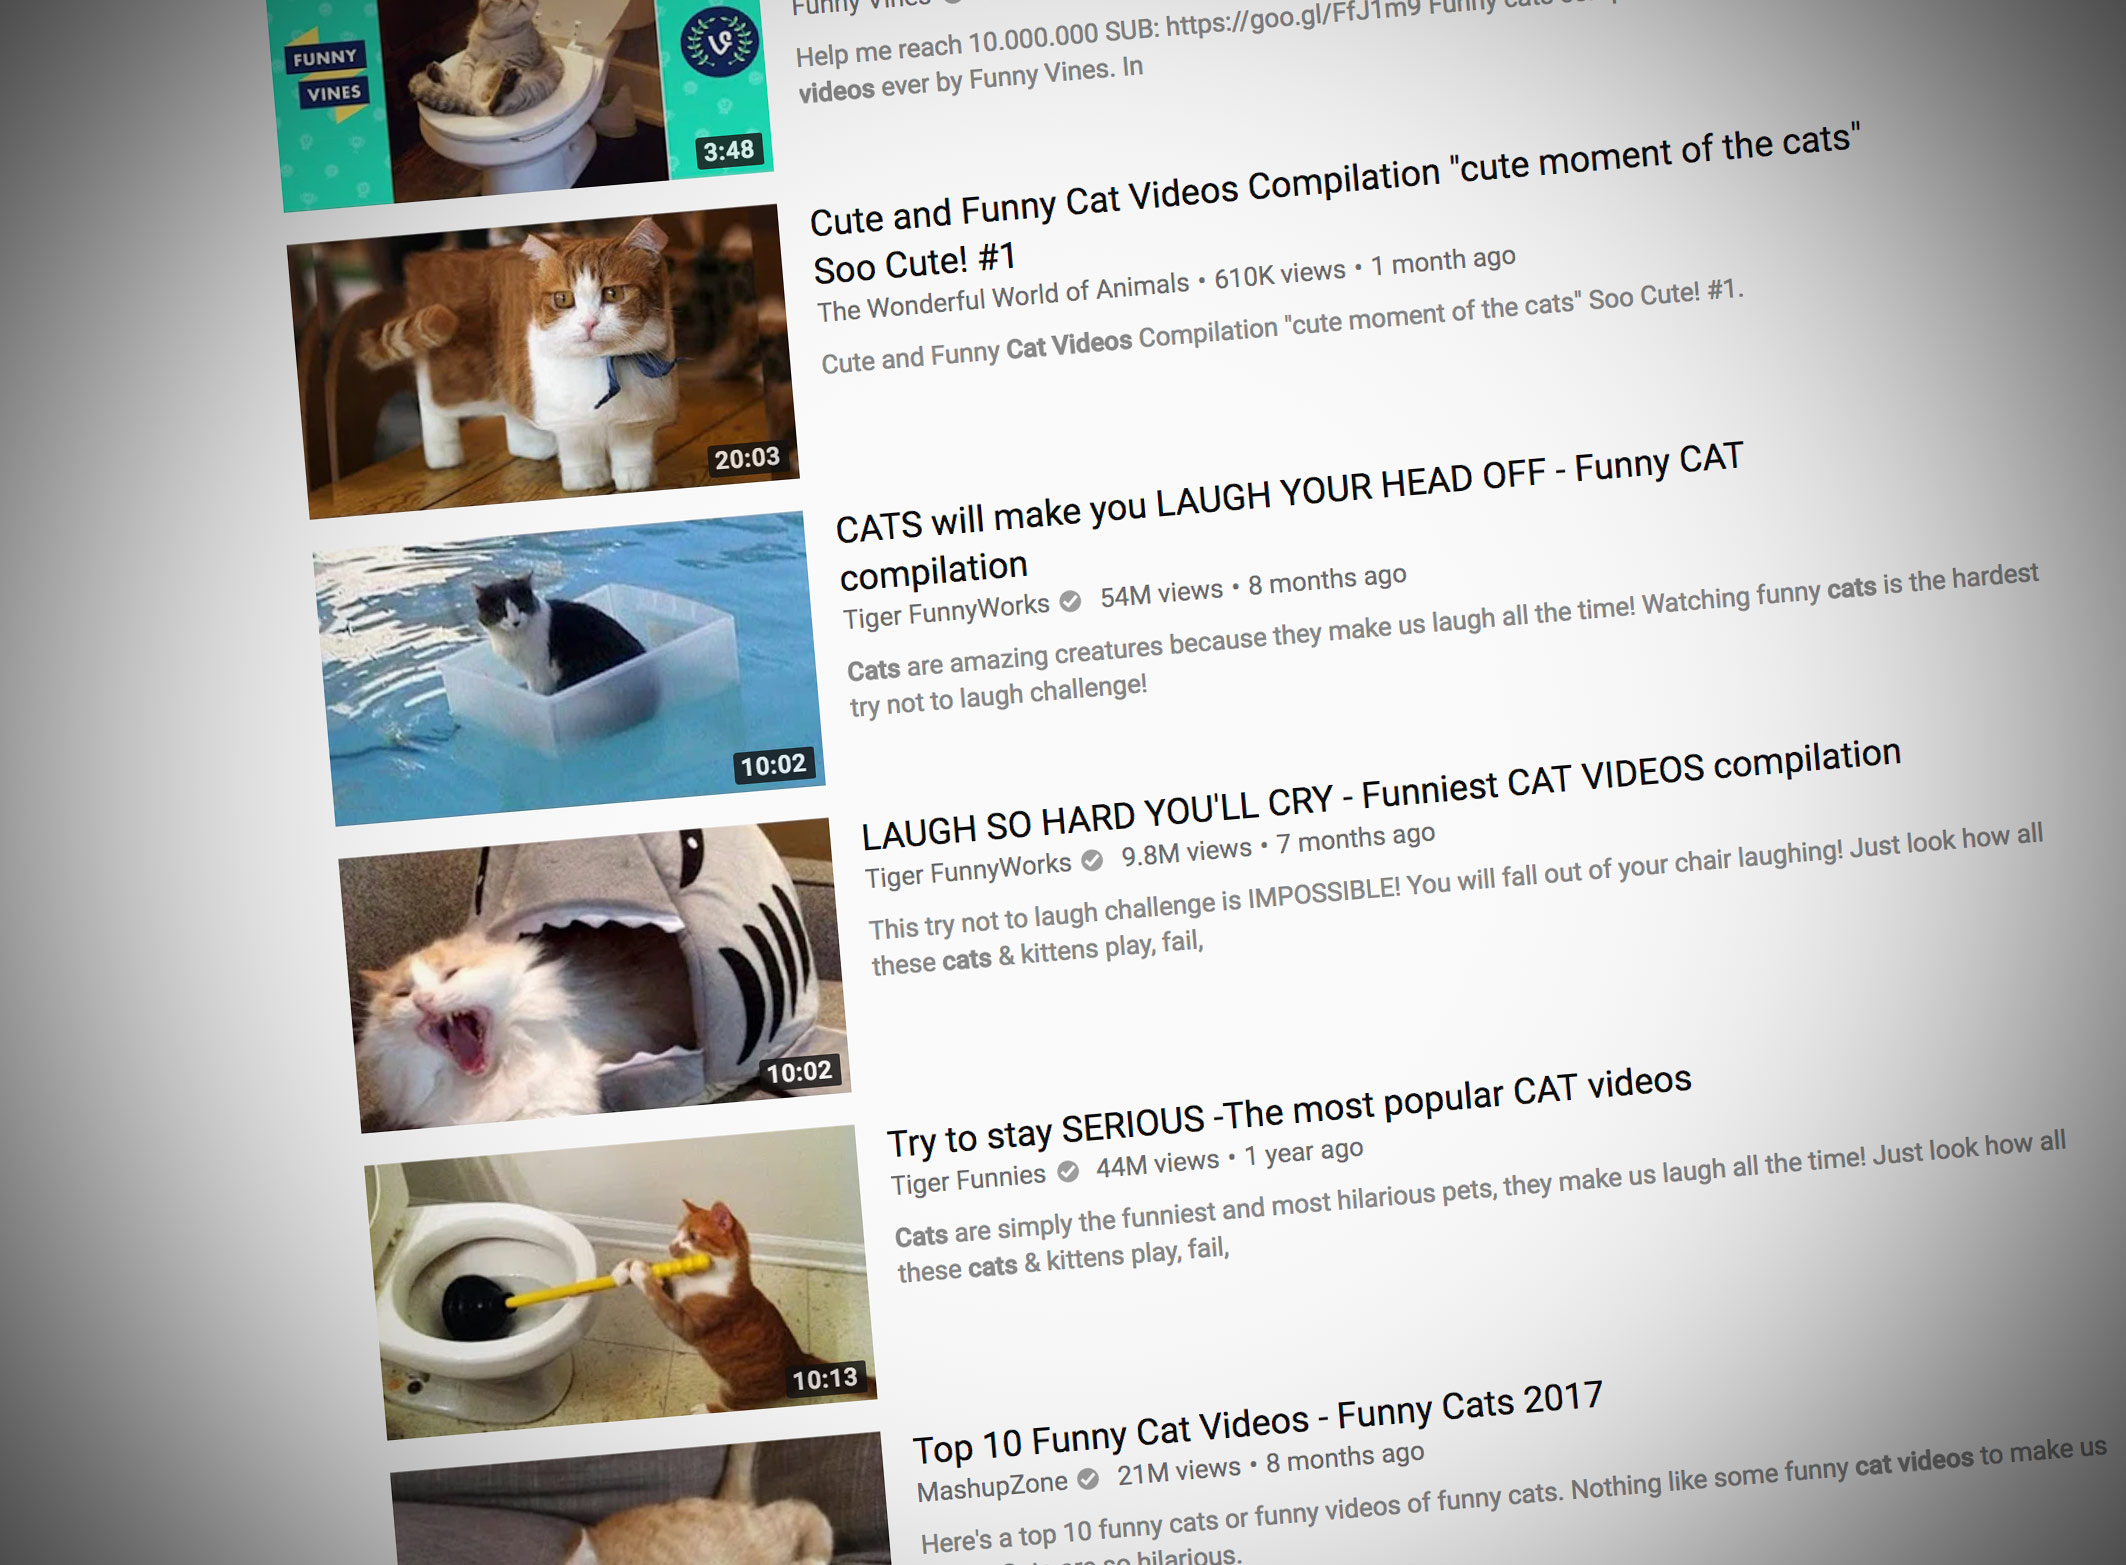 Wallpaper Bloomberg Microsoft Says Its True Cat Videos Distract Workers Bloomberg